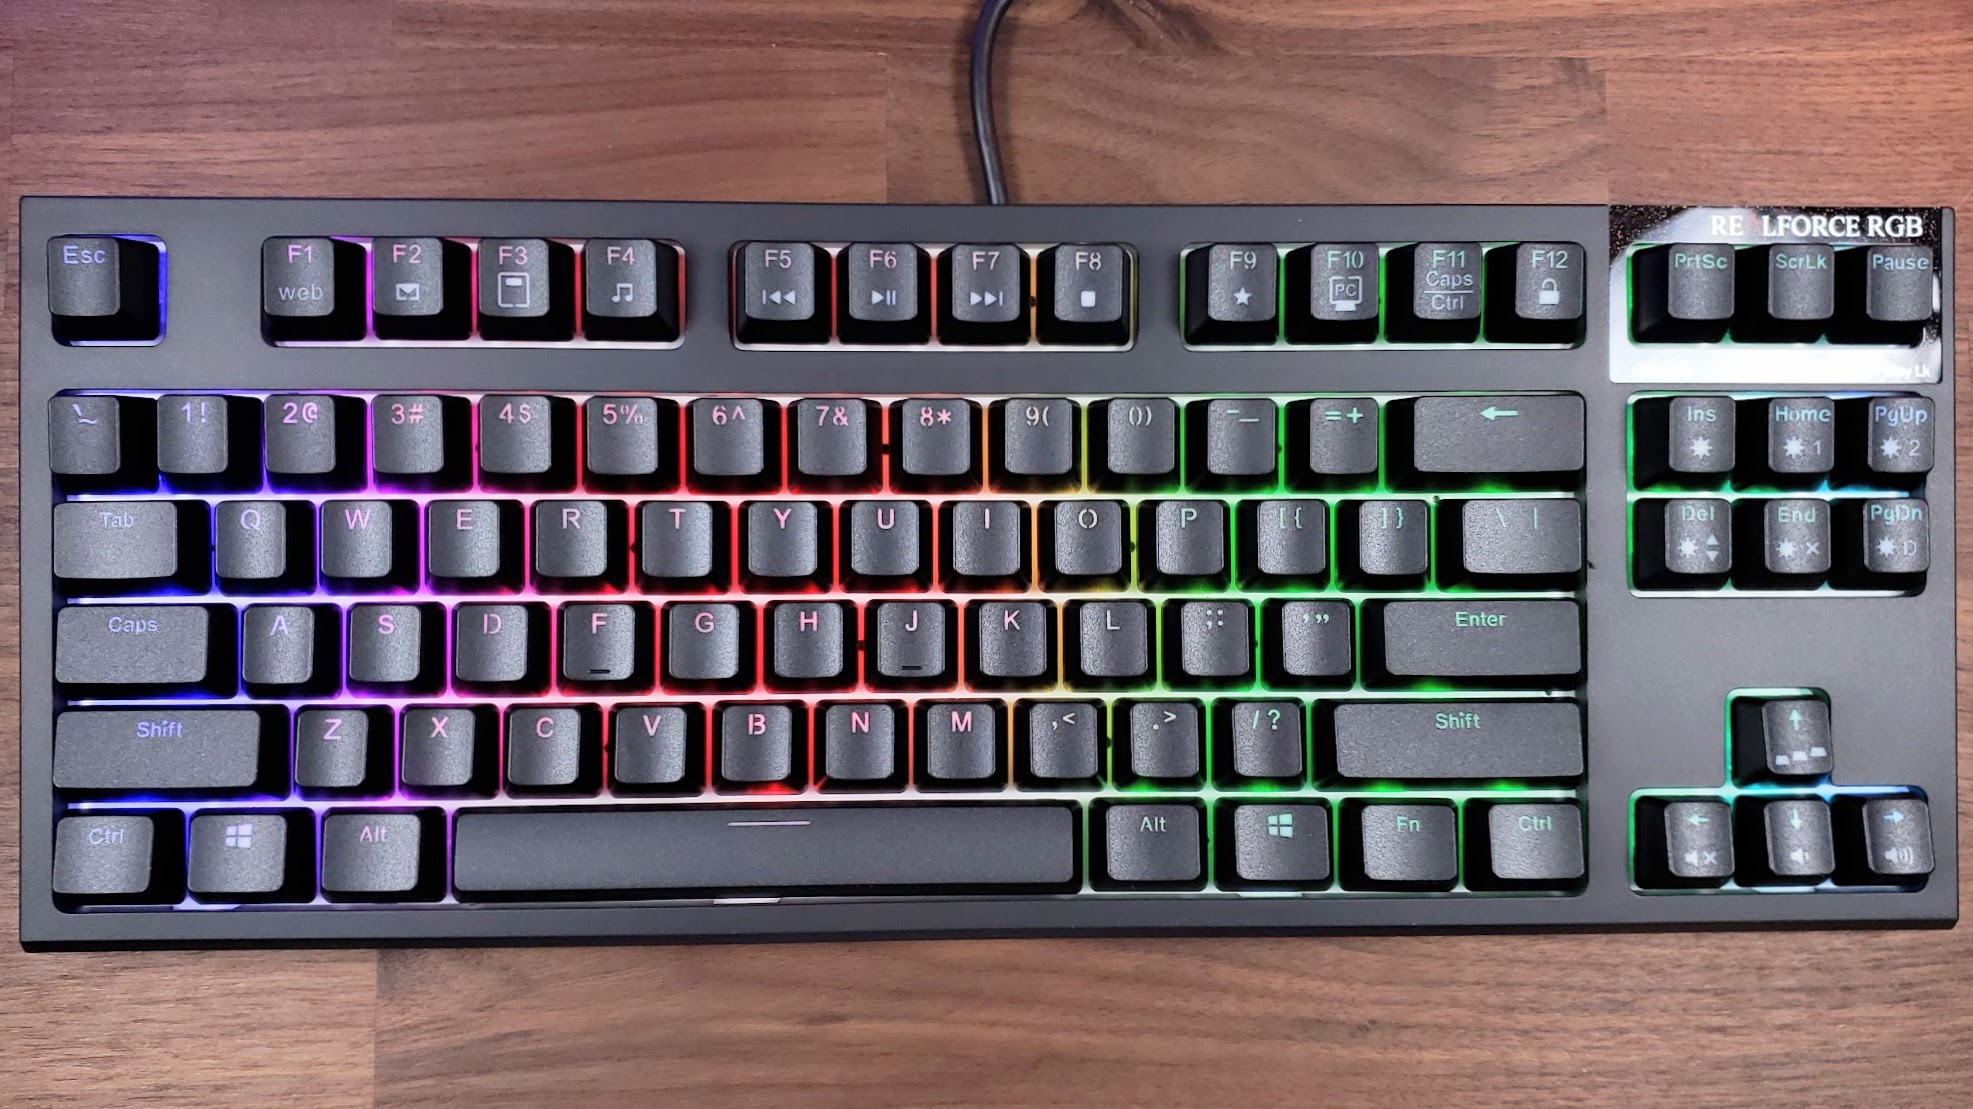 Topre Realforce Rgb Tkl Review Gamespace Com